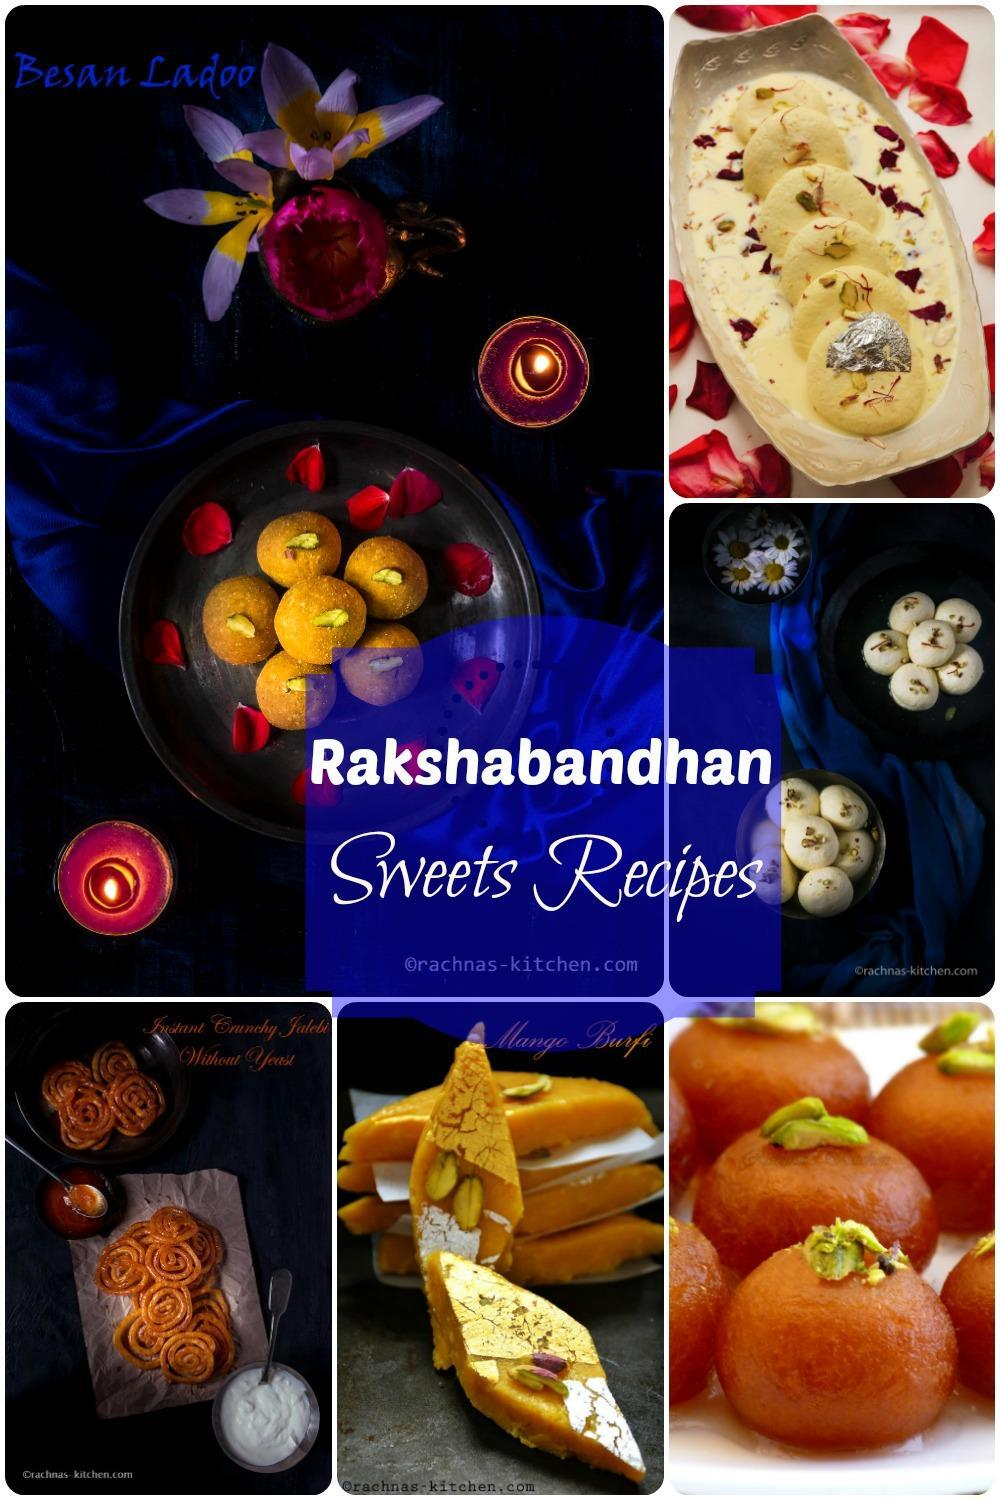 Raksha bandhan recipes | Sweets recipes